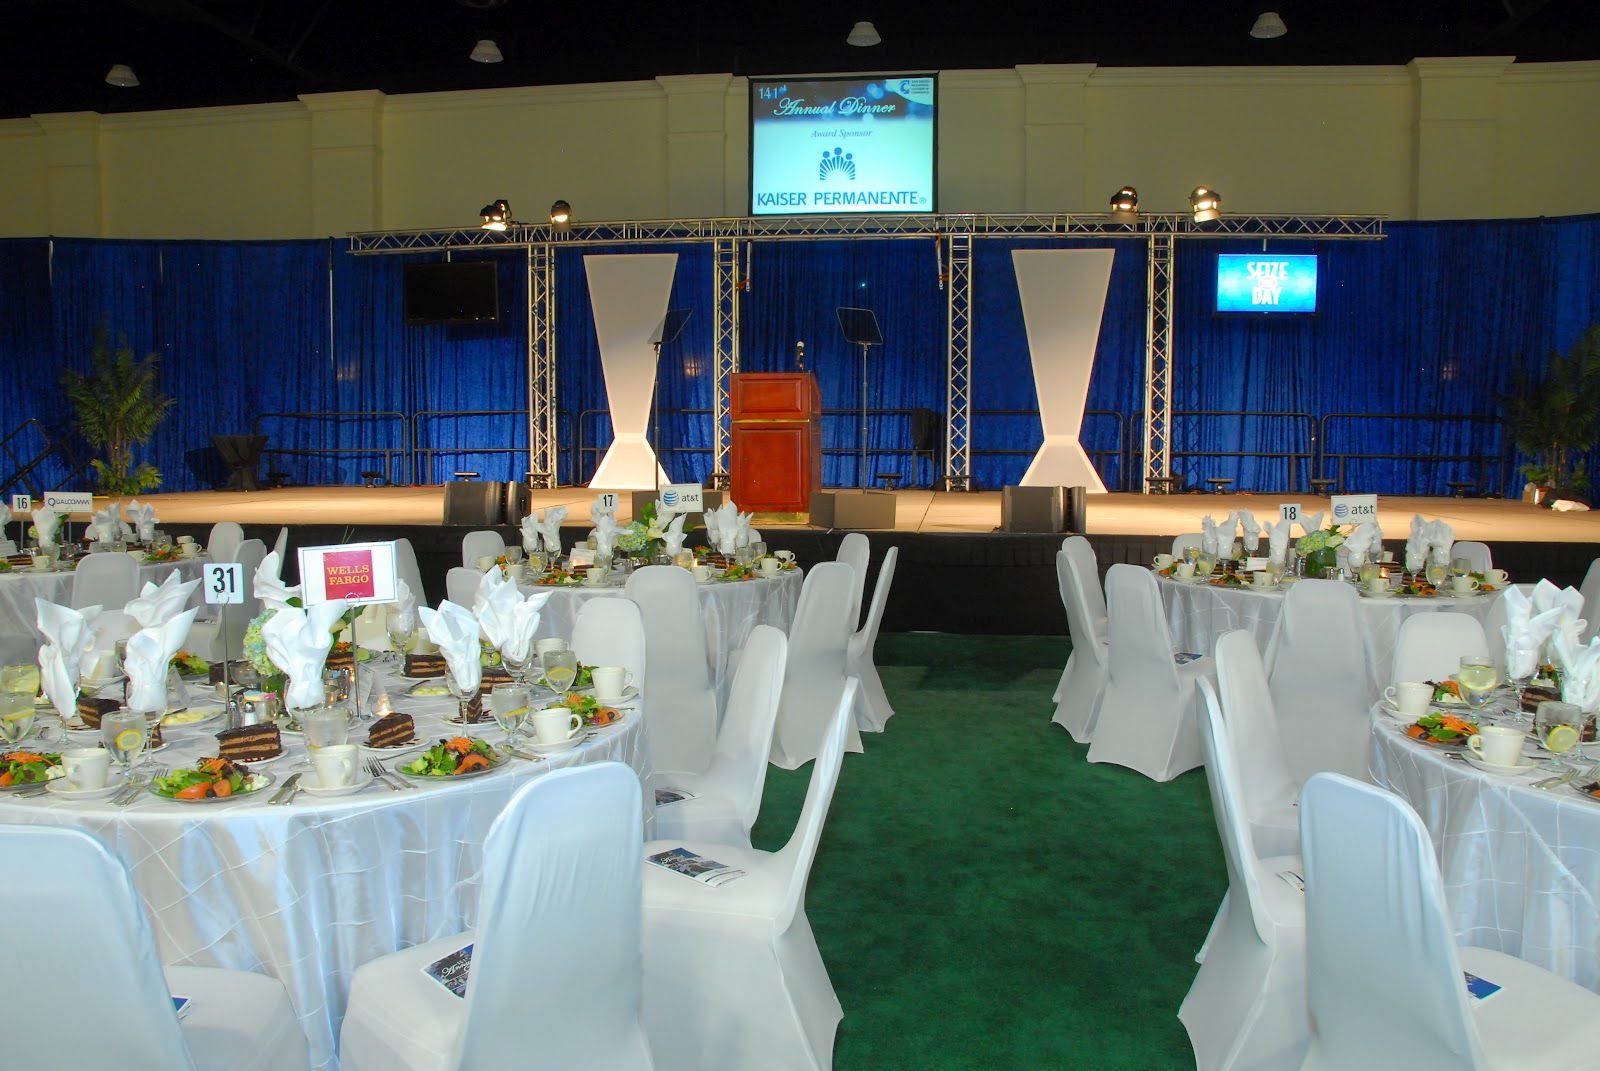 San diego event decor for Annual dinner decoration